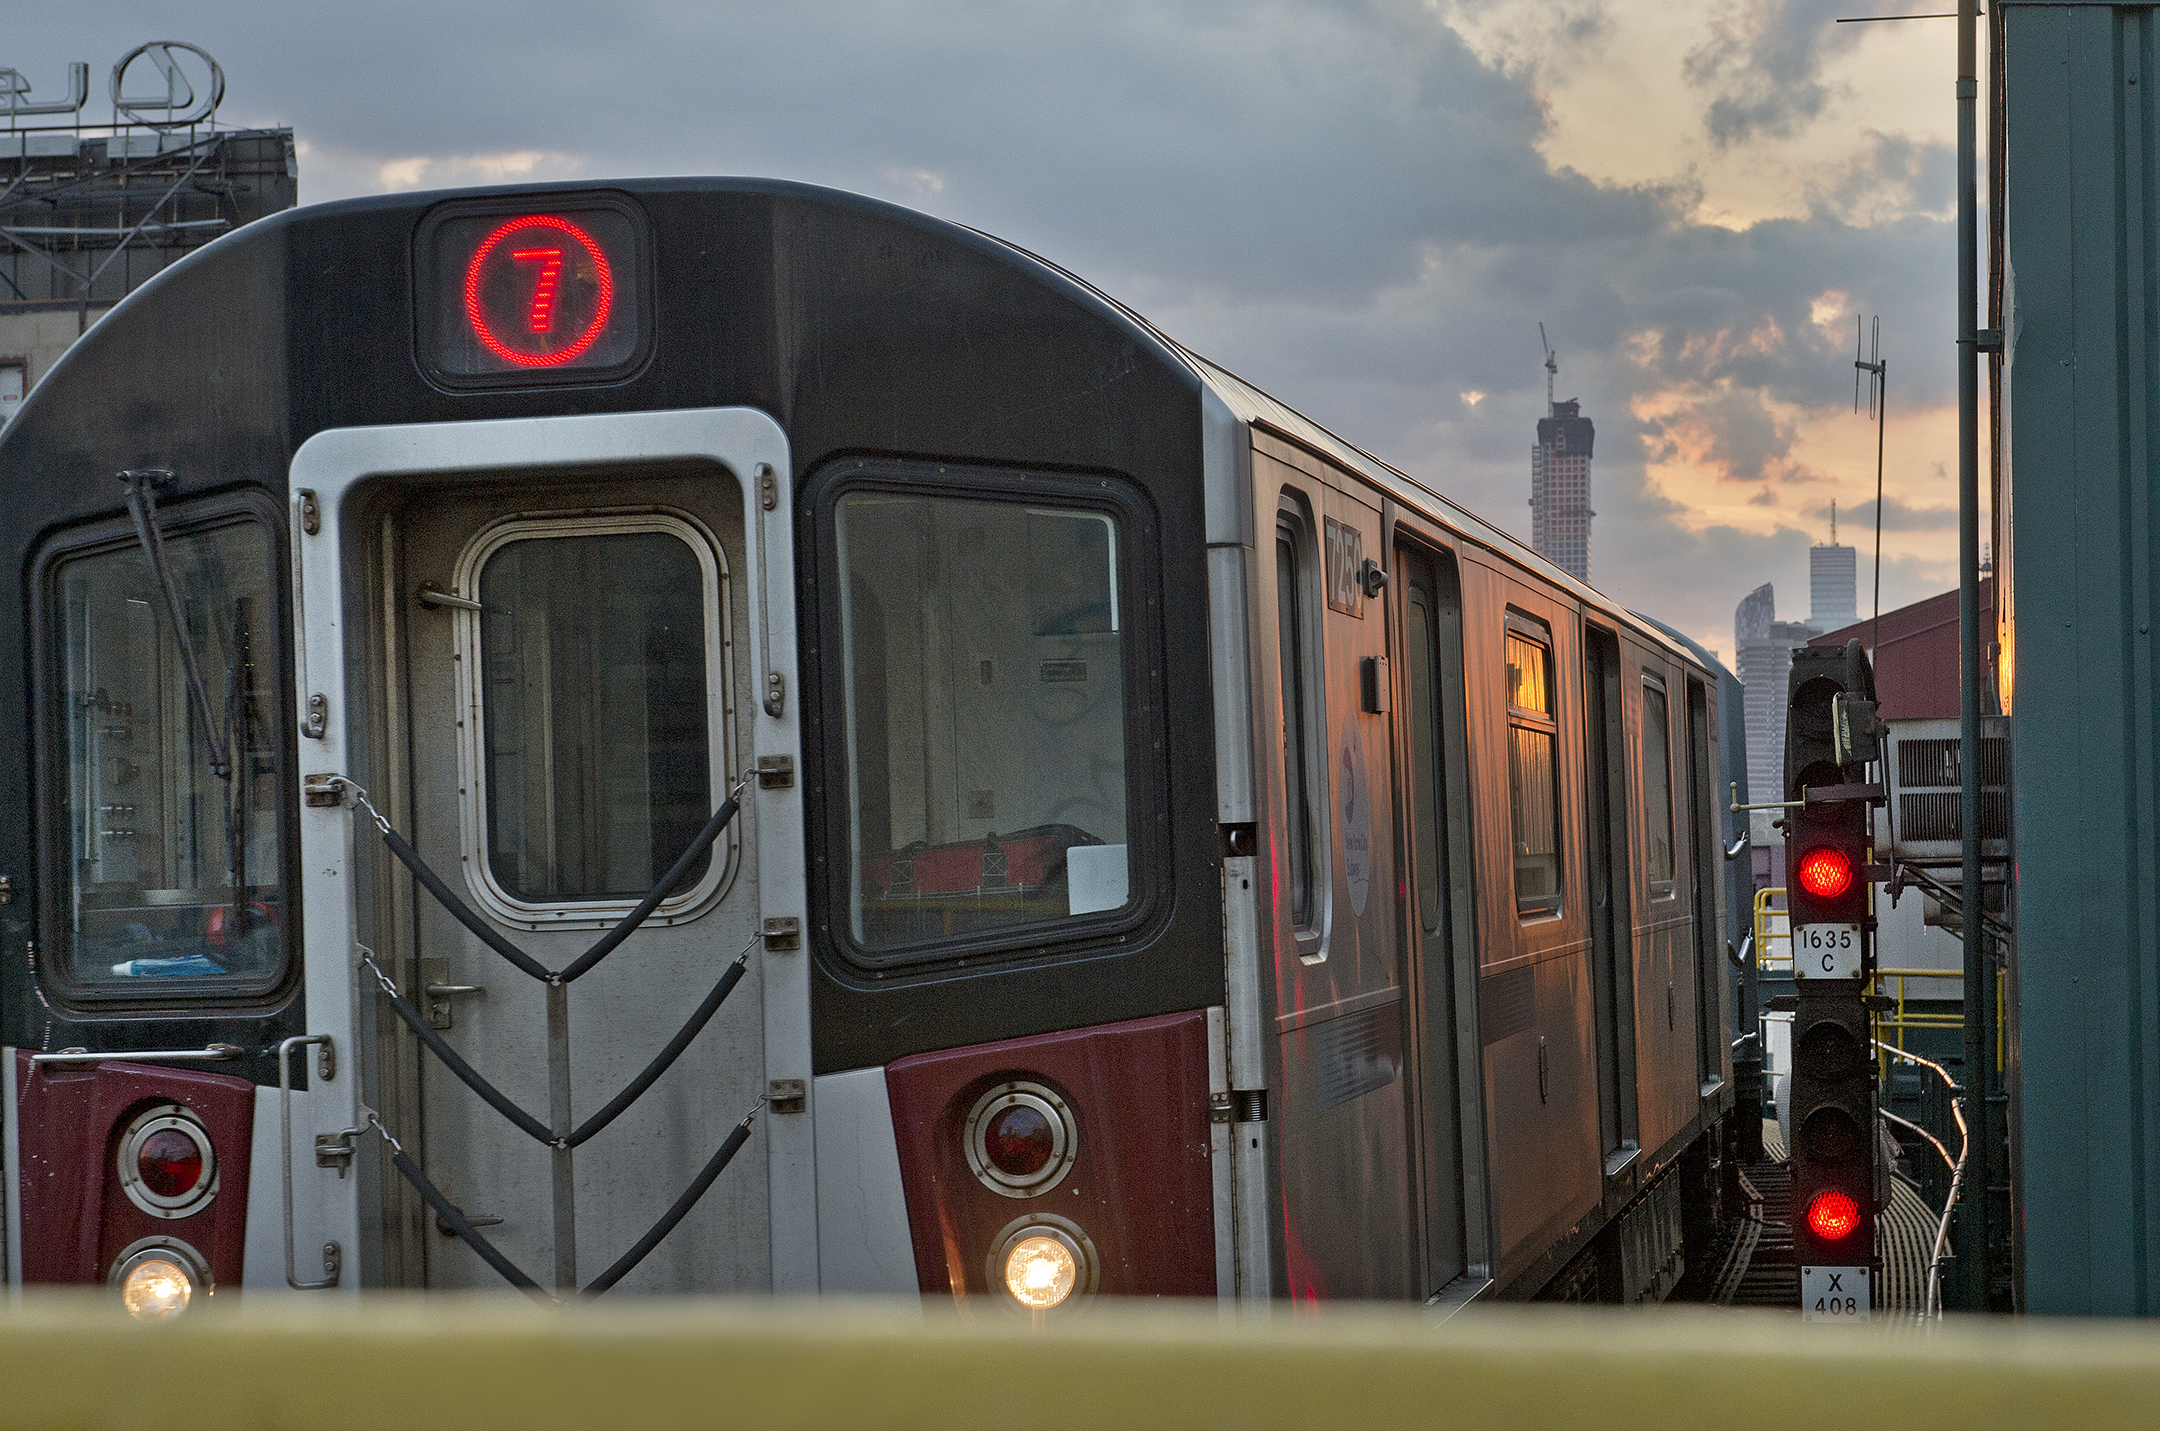 The No. 7 train. Photo via the MTA/Patrick Cashin.